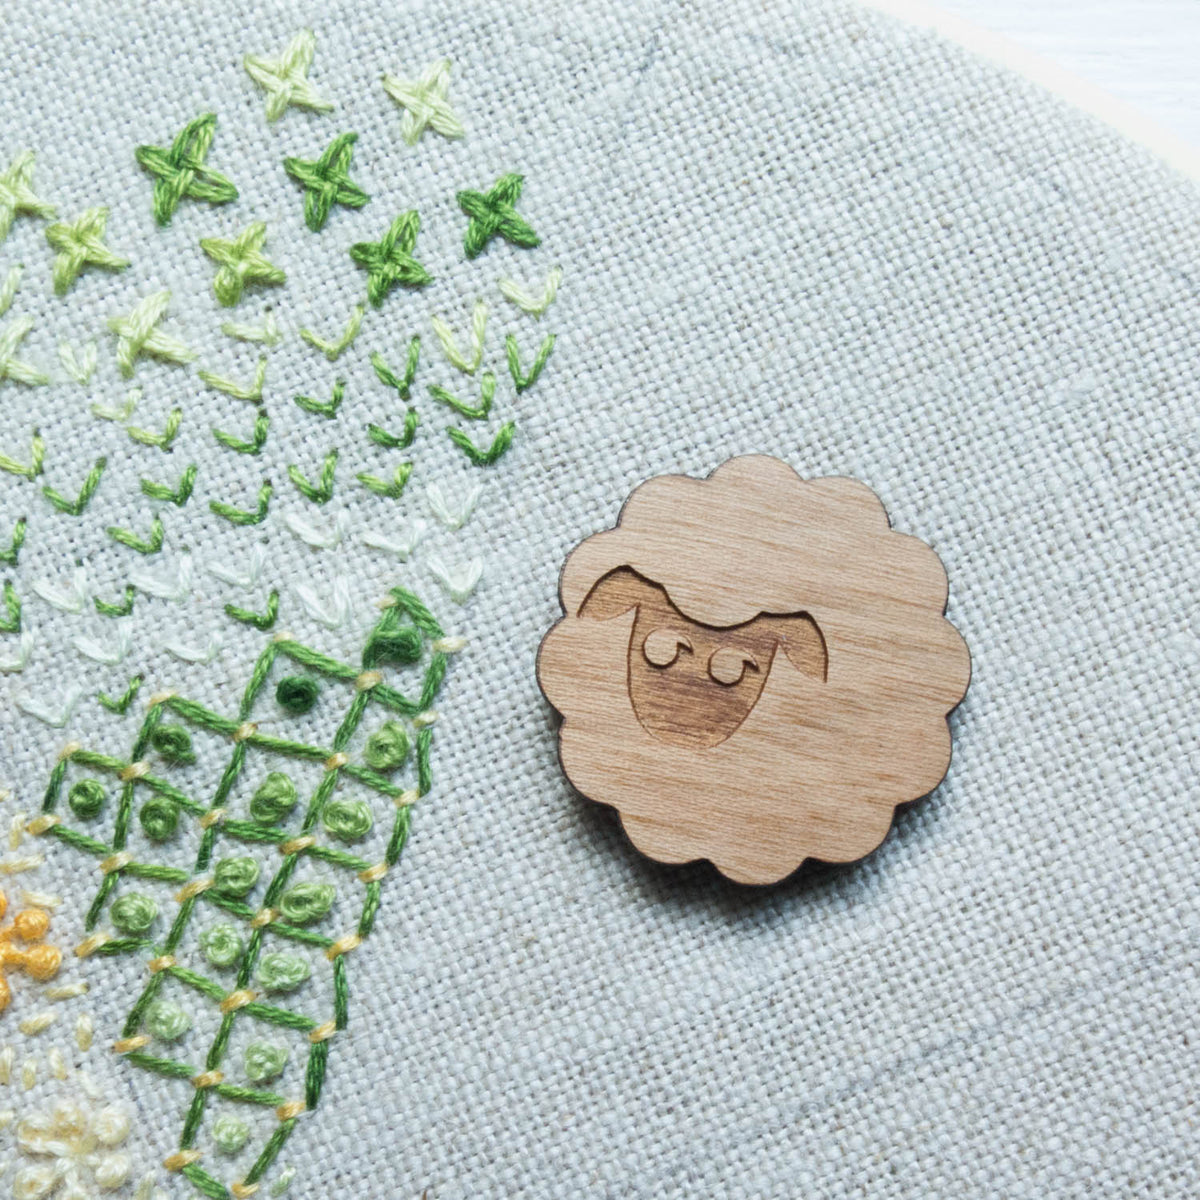 Wood Needle Minder -Sheep Needle Minder - Snuggly Monkey